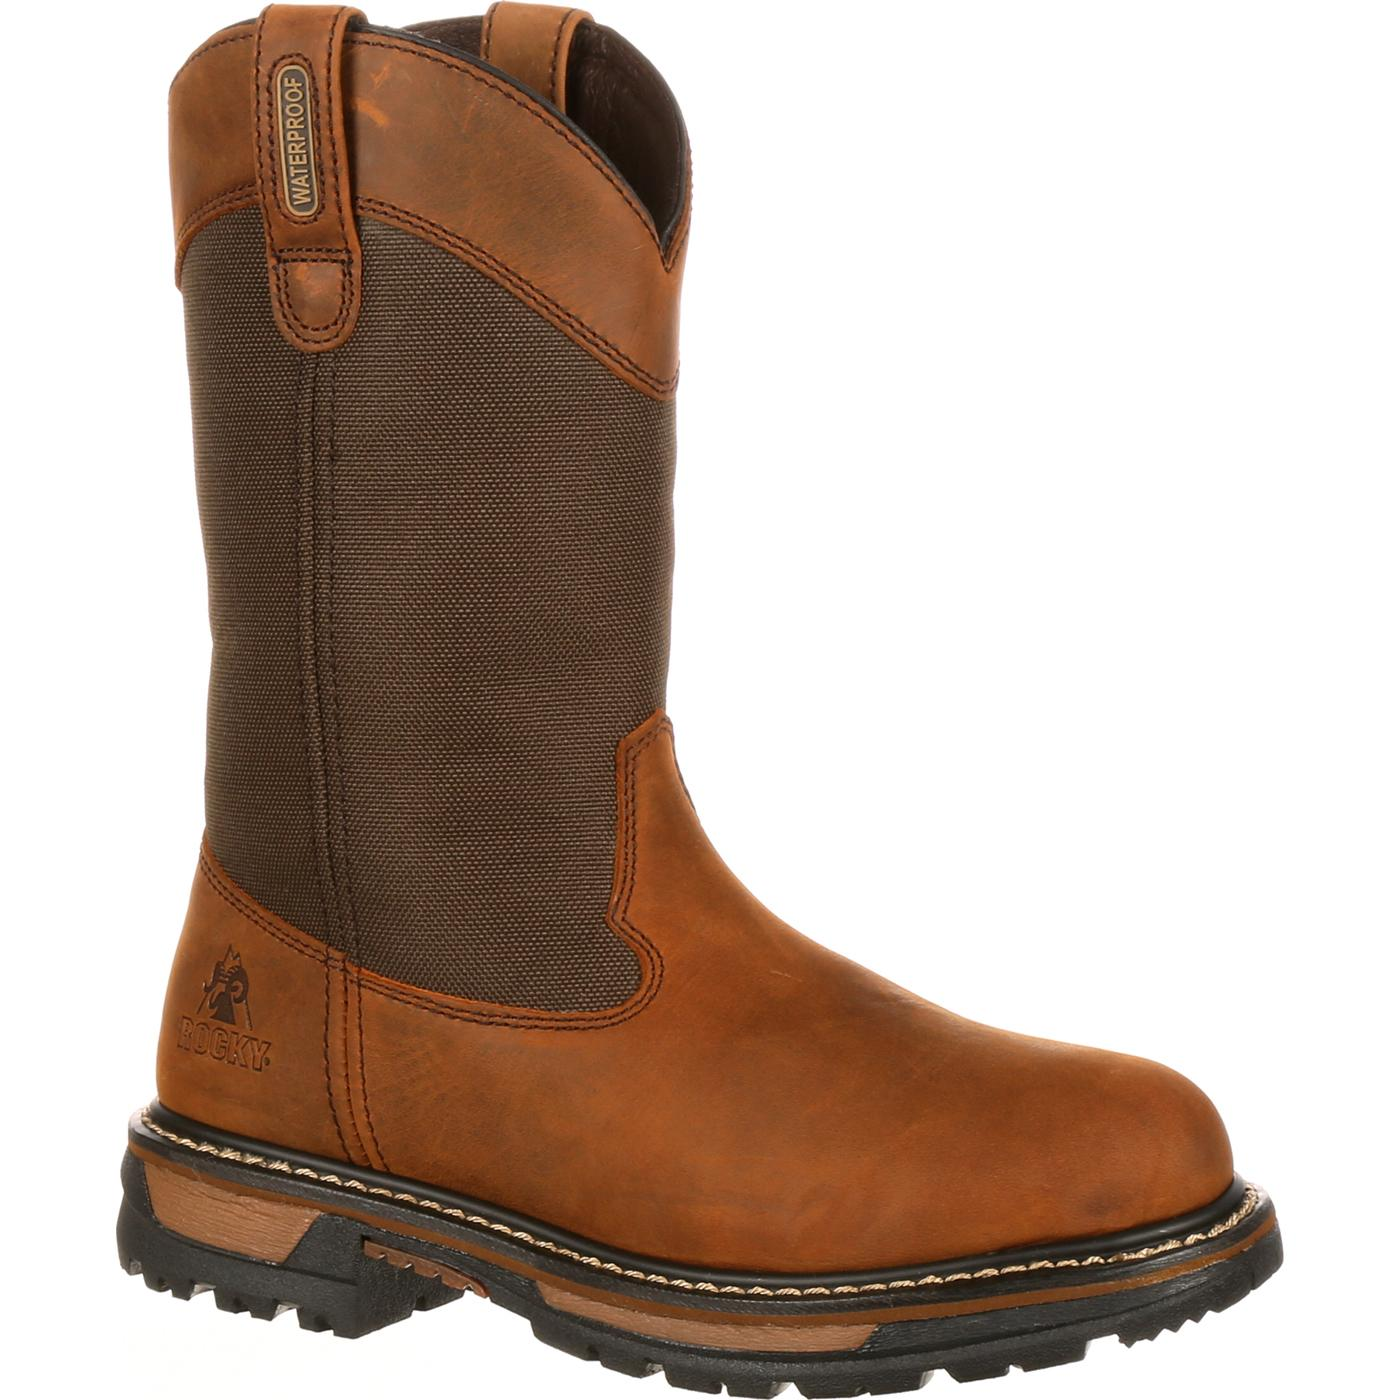 Men S Insulated Waterproof Work Boots Rocky Ride Fq0002867